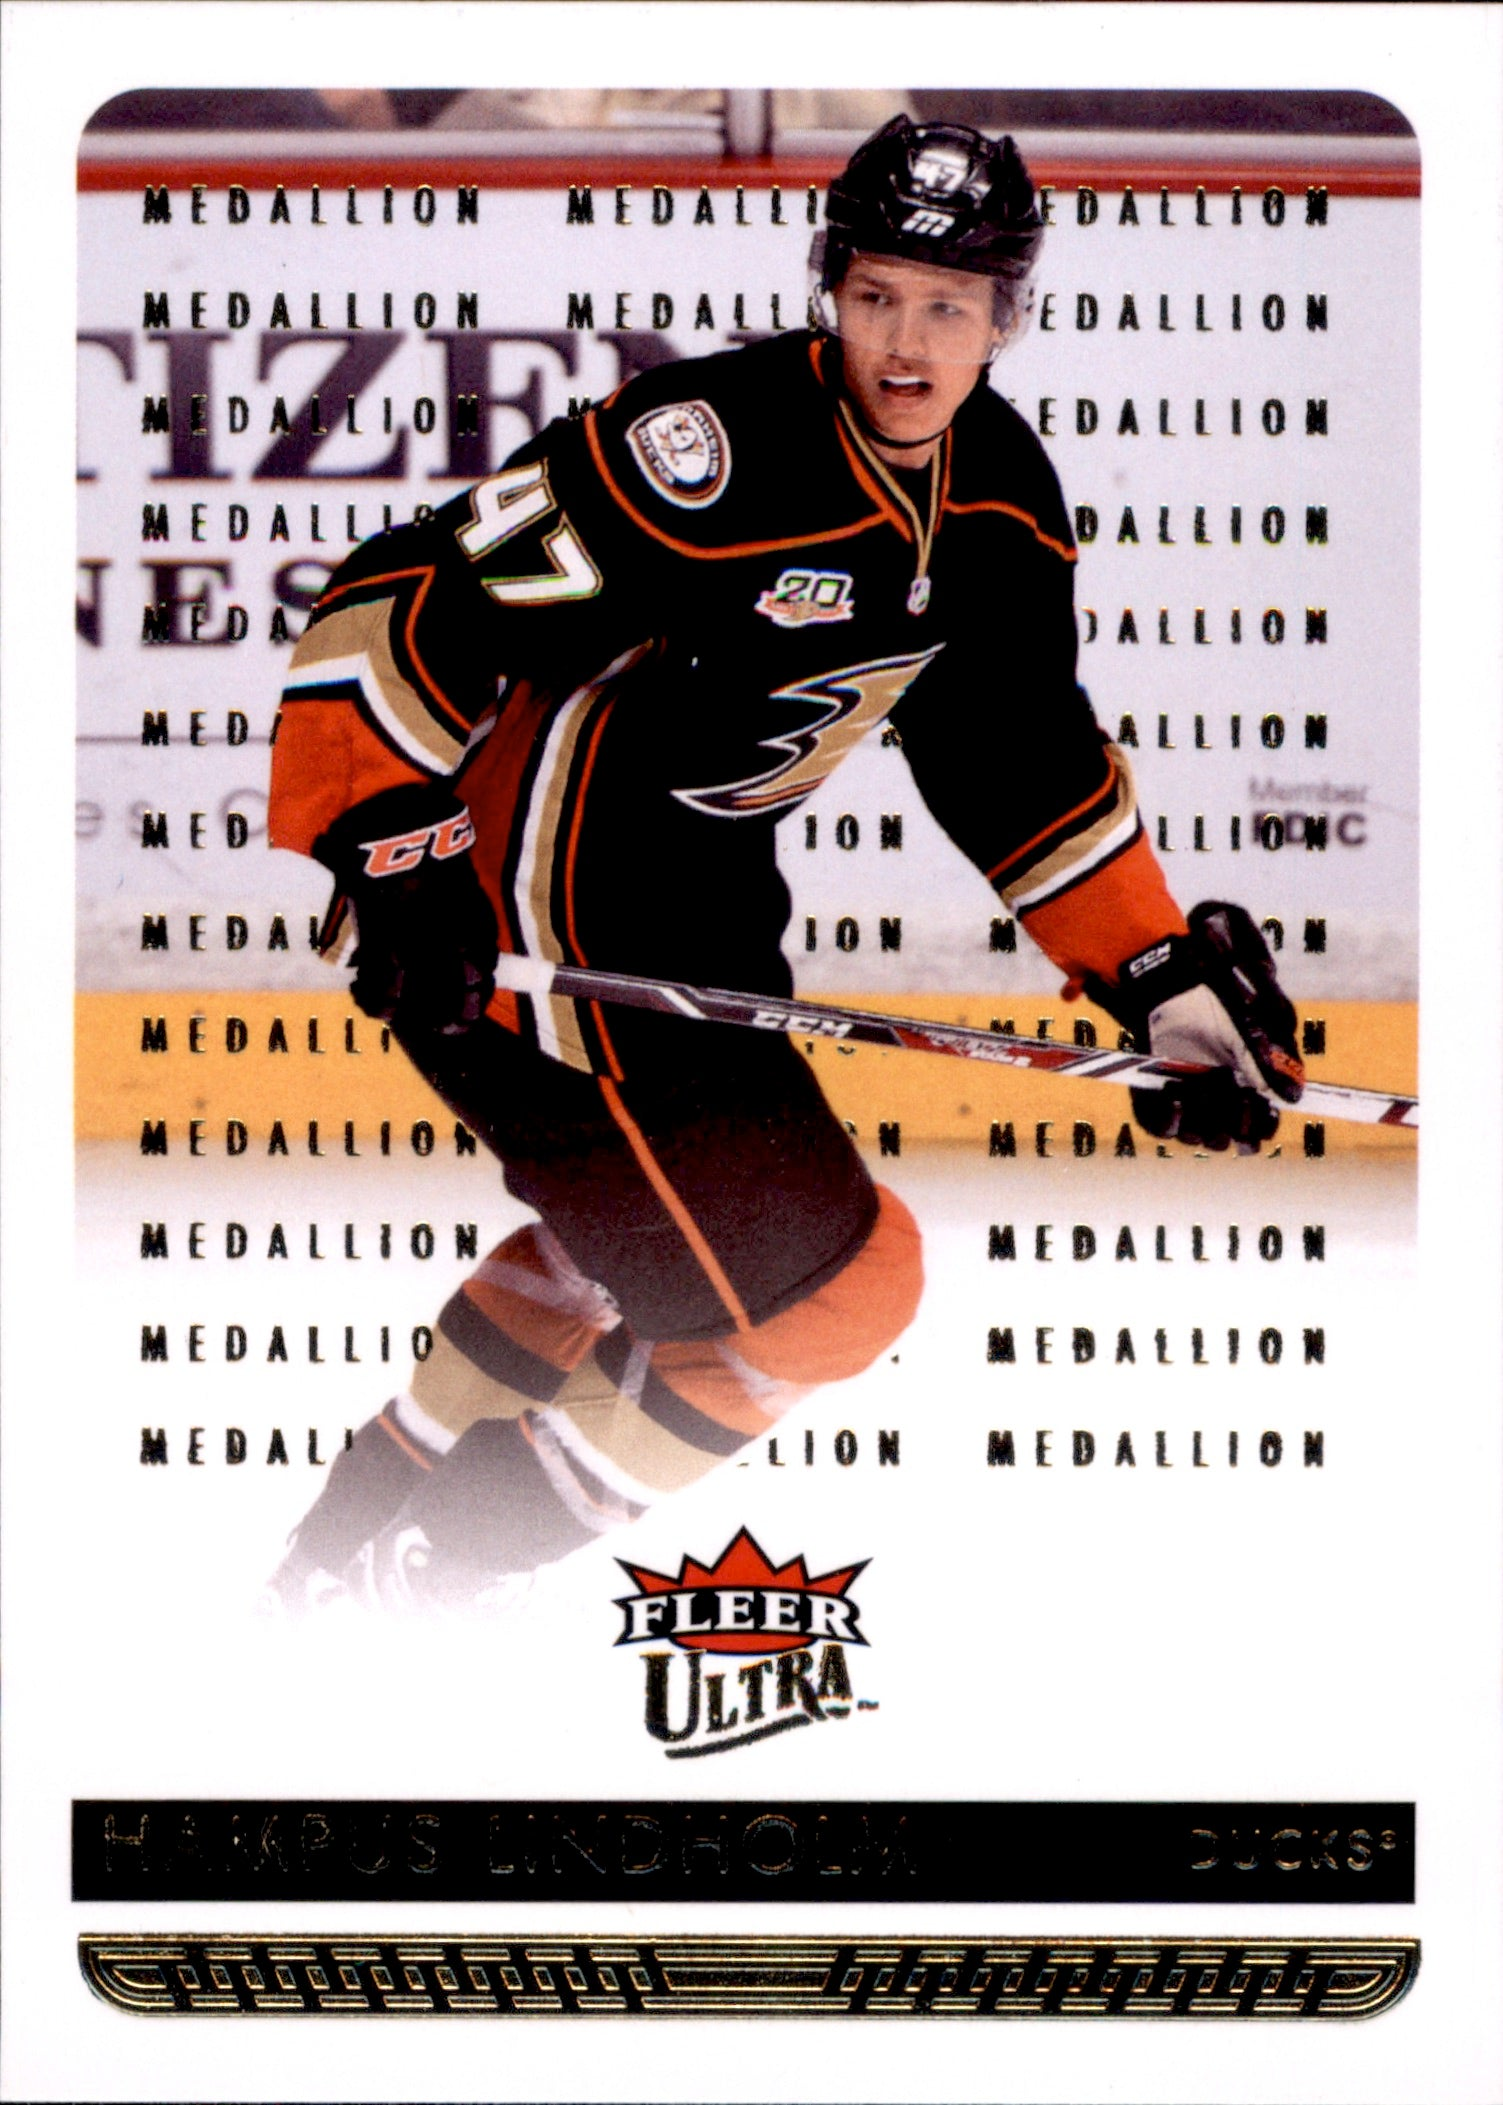 2014-15 Fleer Ultra Gold Medallion #007 Hampus Lindholm | Eastridge Sports Cards